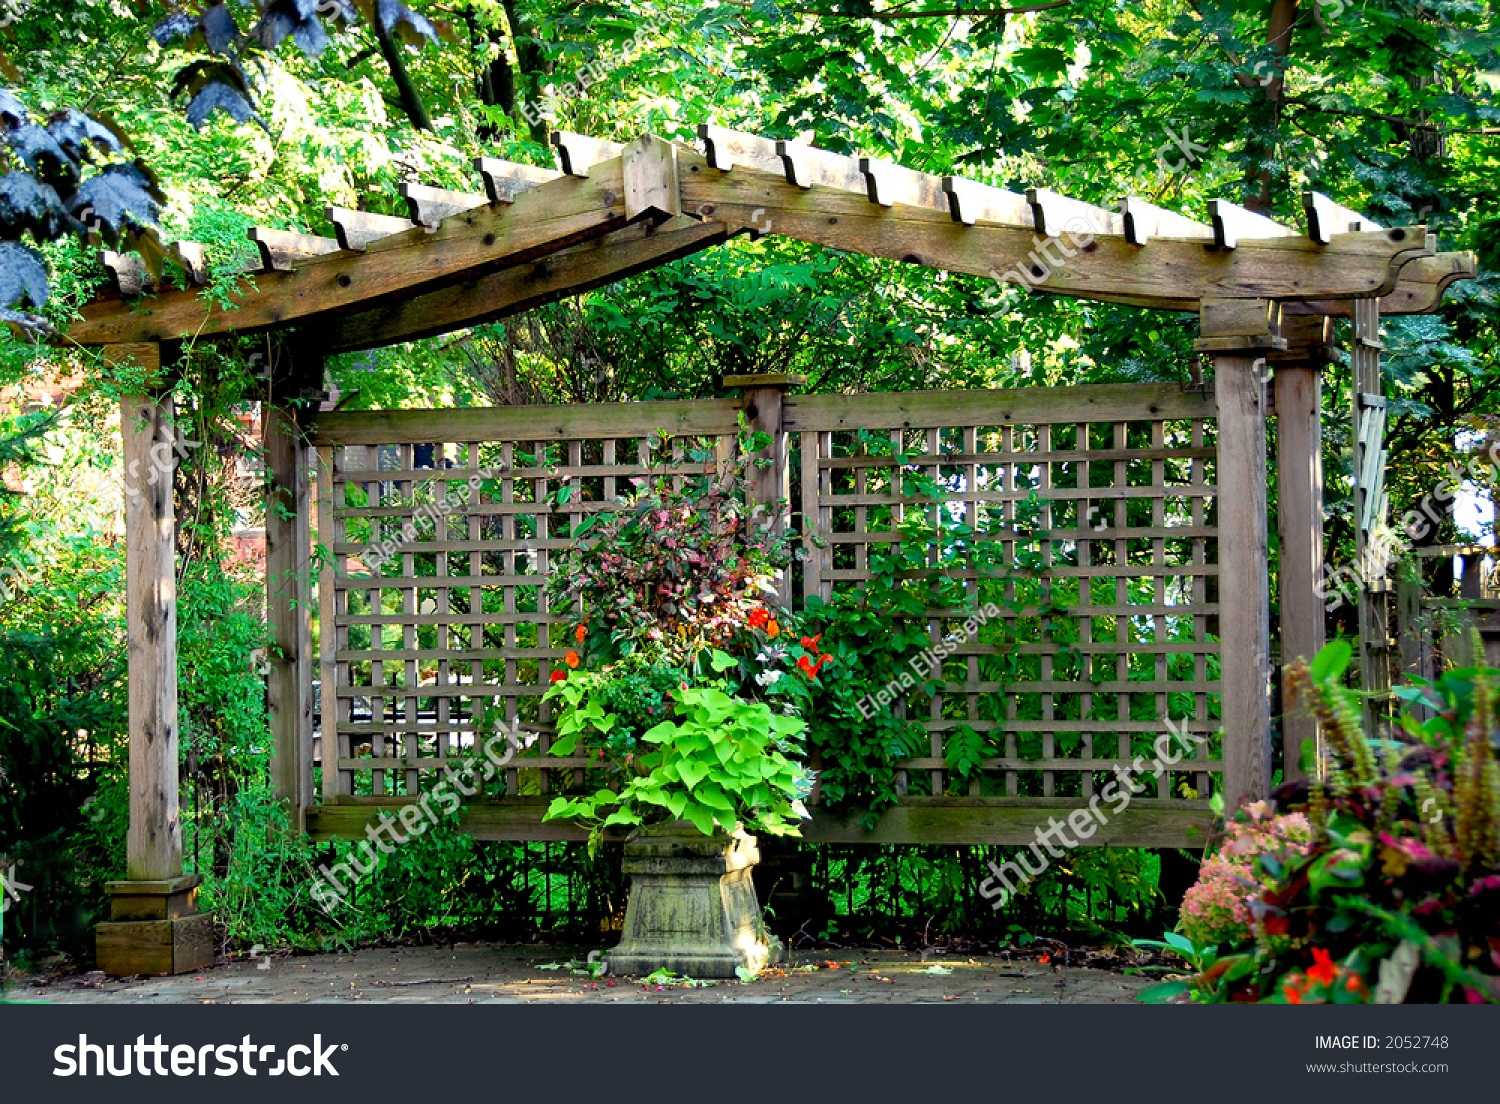 Lush japanese garden wooden gate structure stock photo for Japanese garden structures wood